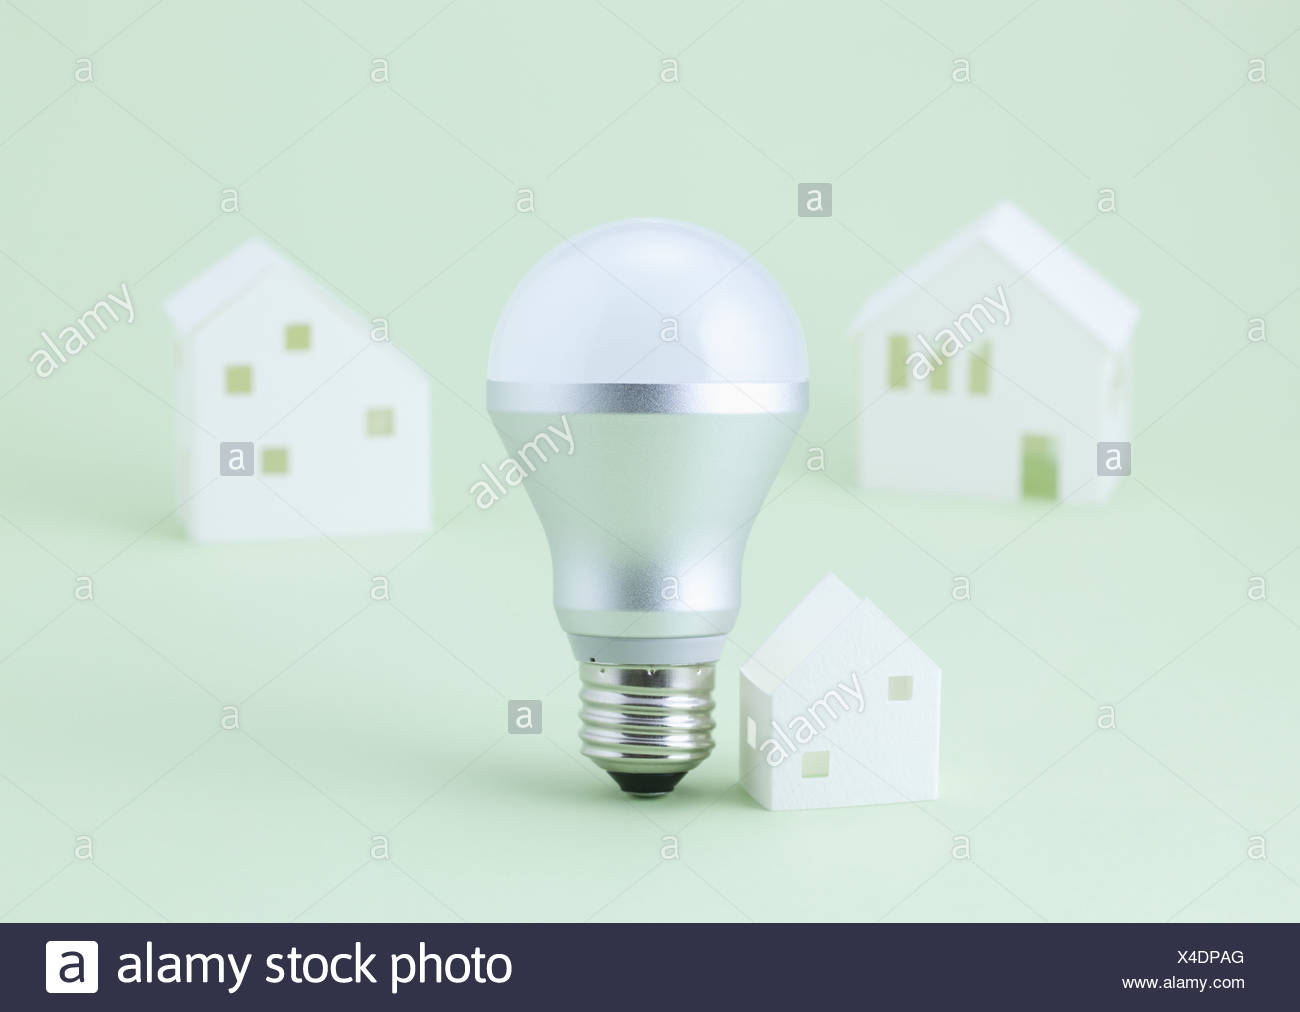 Ampoule Led Maison Ampoule Led Et Maisons Miniatures Banque D Images Photo Stock